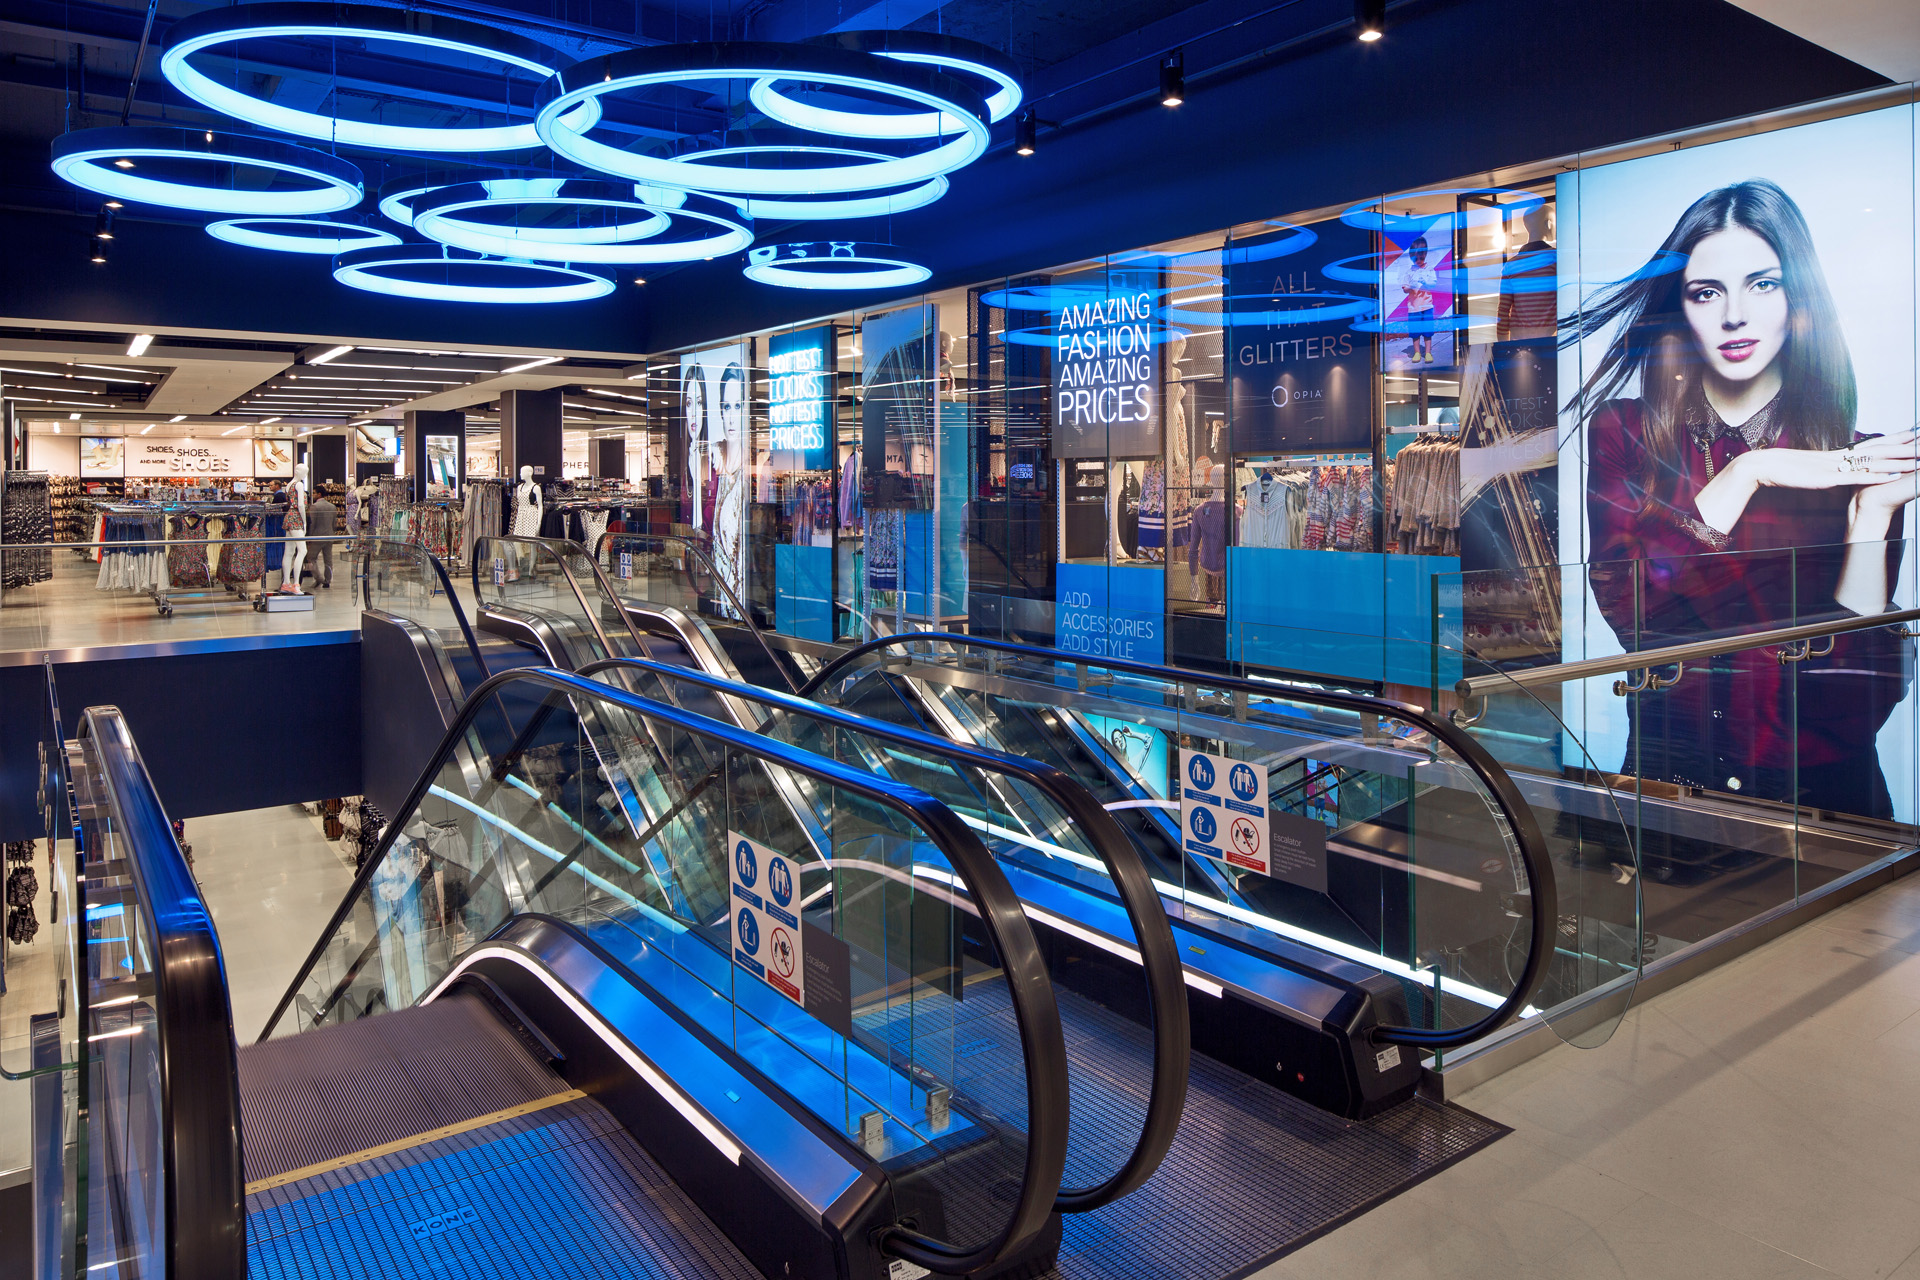 Why Primark is bucking retail's downward trend and thriving on today's high street